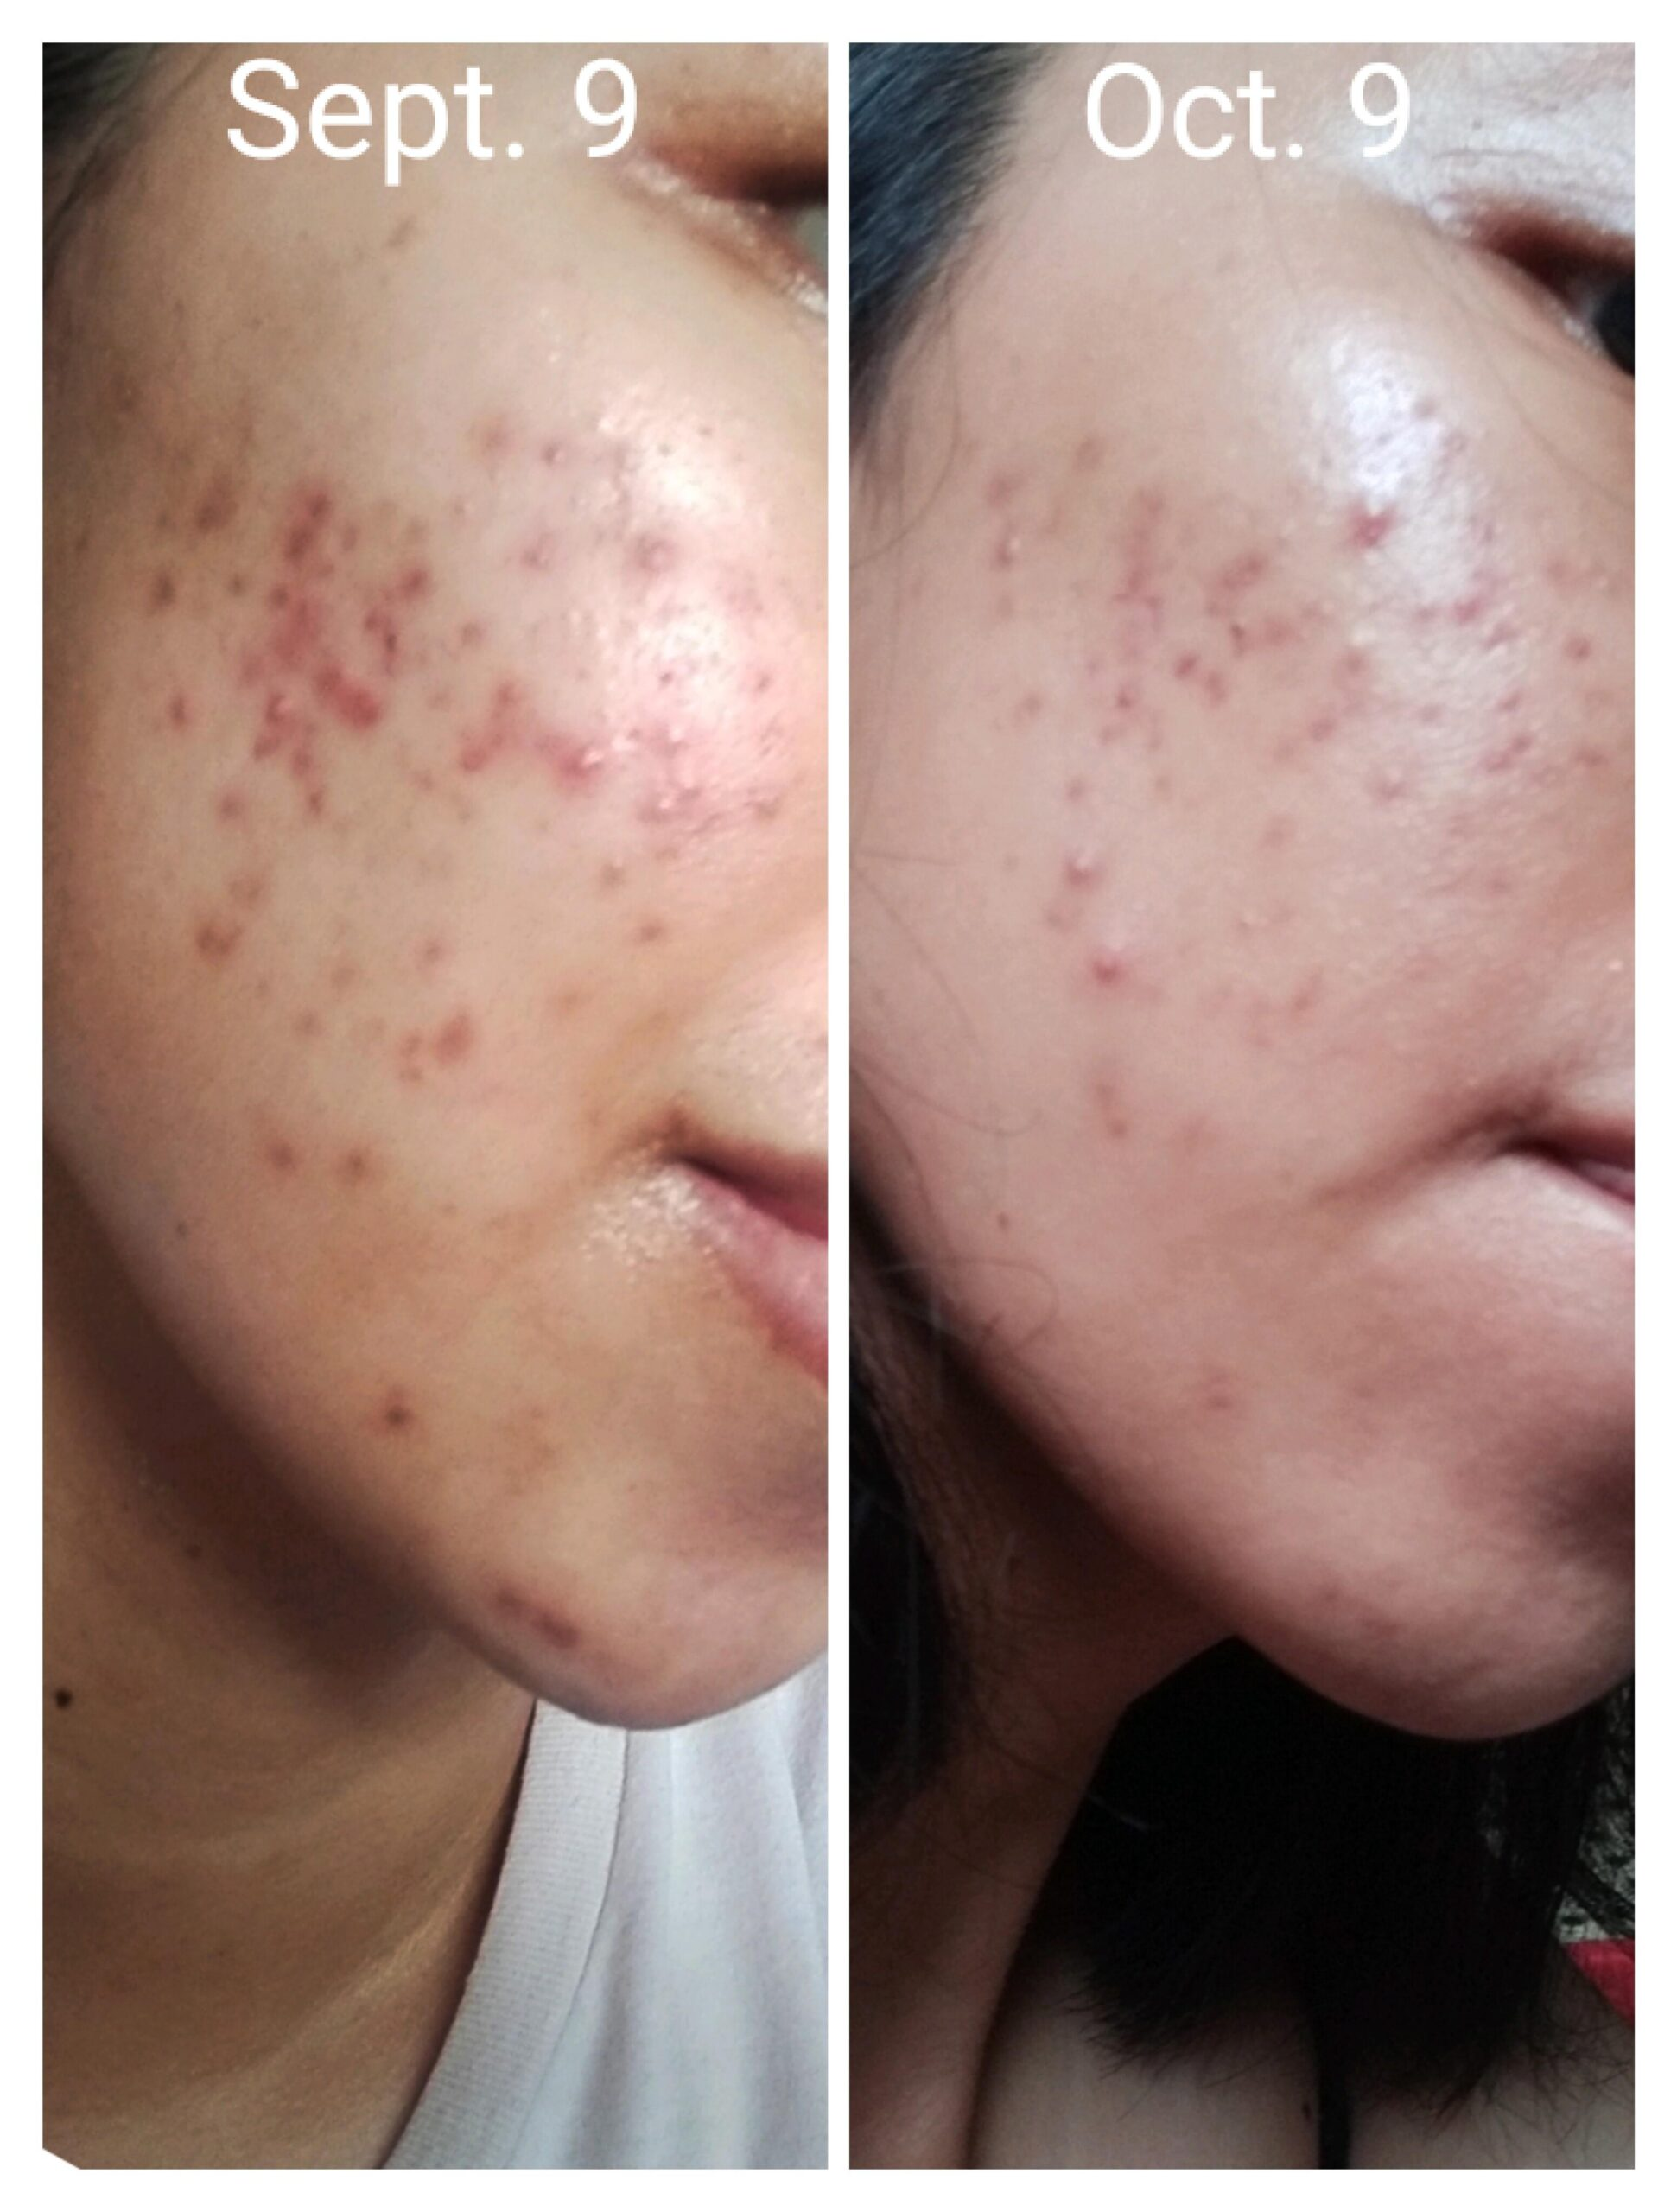 [B&A] In 3rd month of constantly purging, I'm able to see improvements today. More in comments.